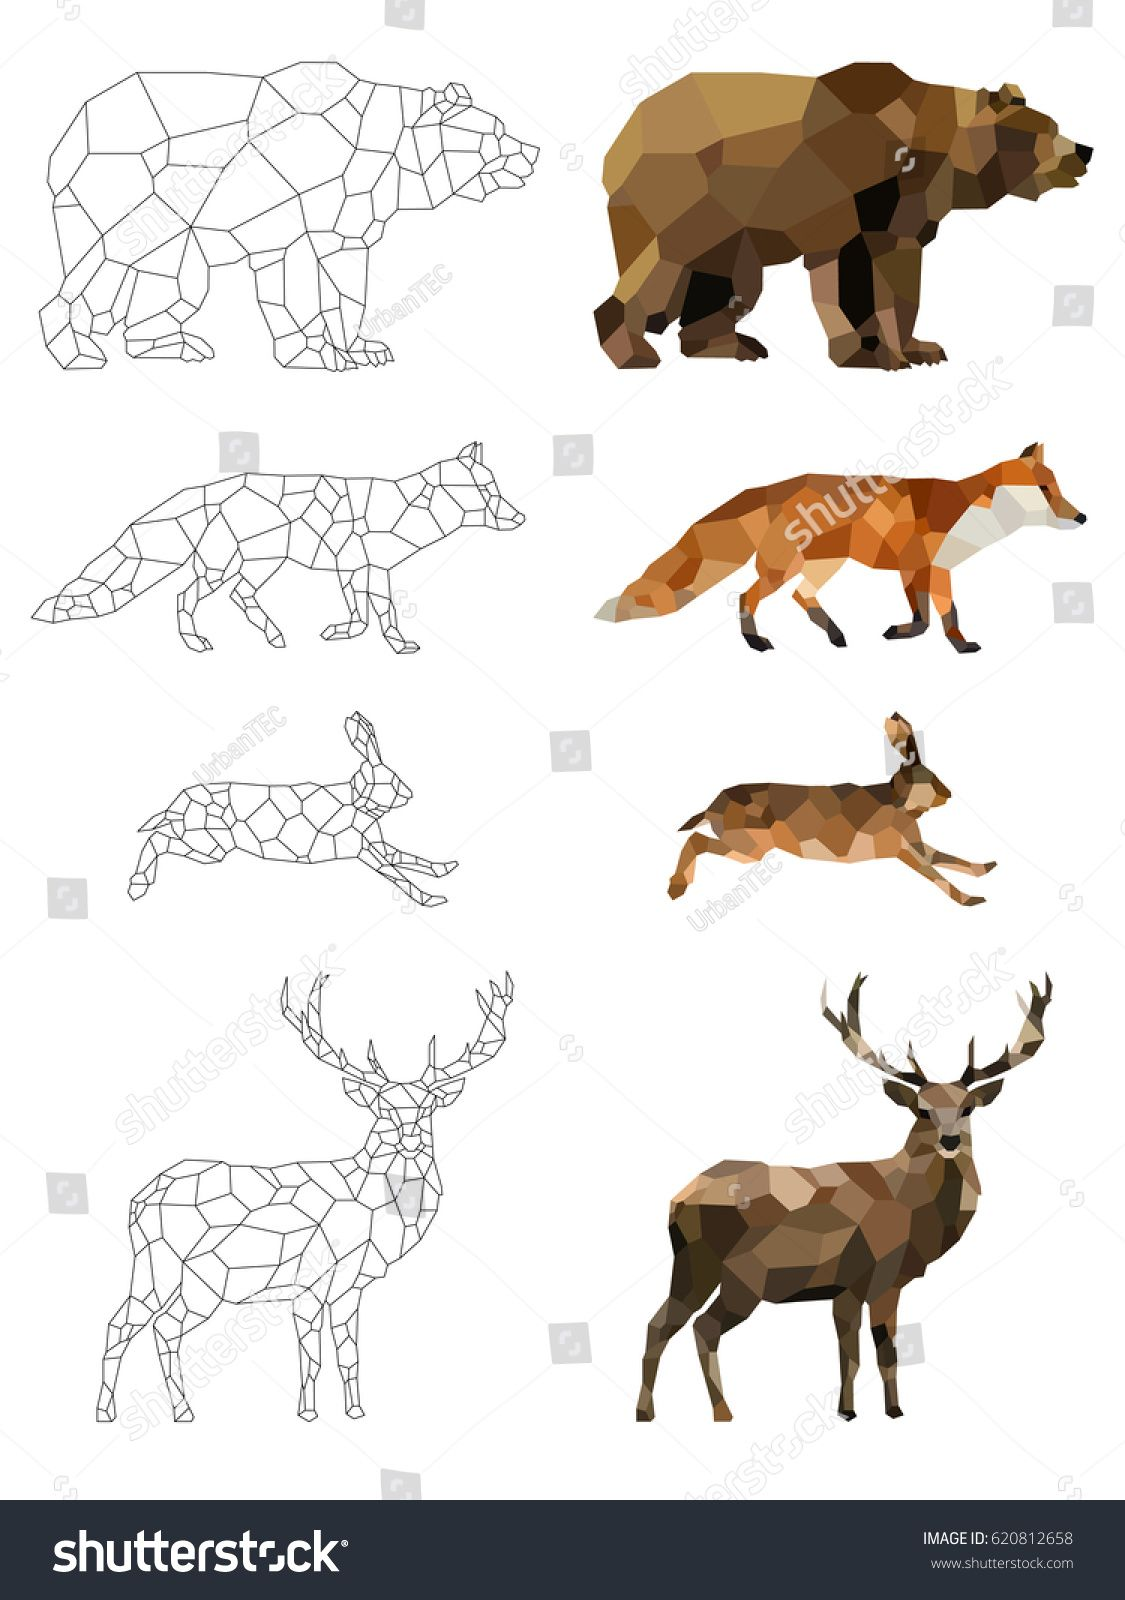 Low Poly Vector Animals Set Bear Fox Hare Deer On A Transparent Background Abstract Polygonal Geom Geometric Art Animal Geometric Animals Geometric Deer